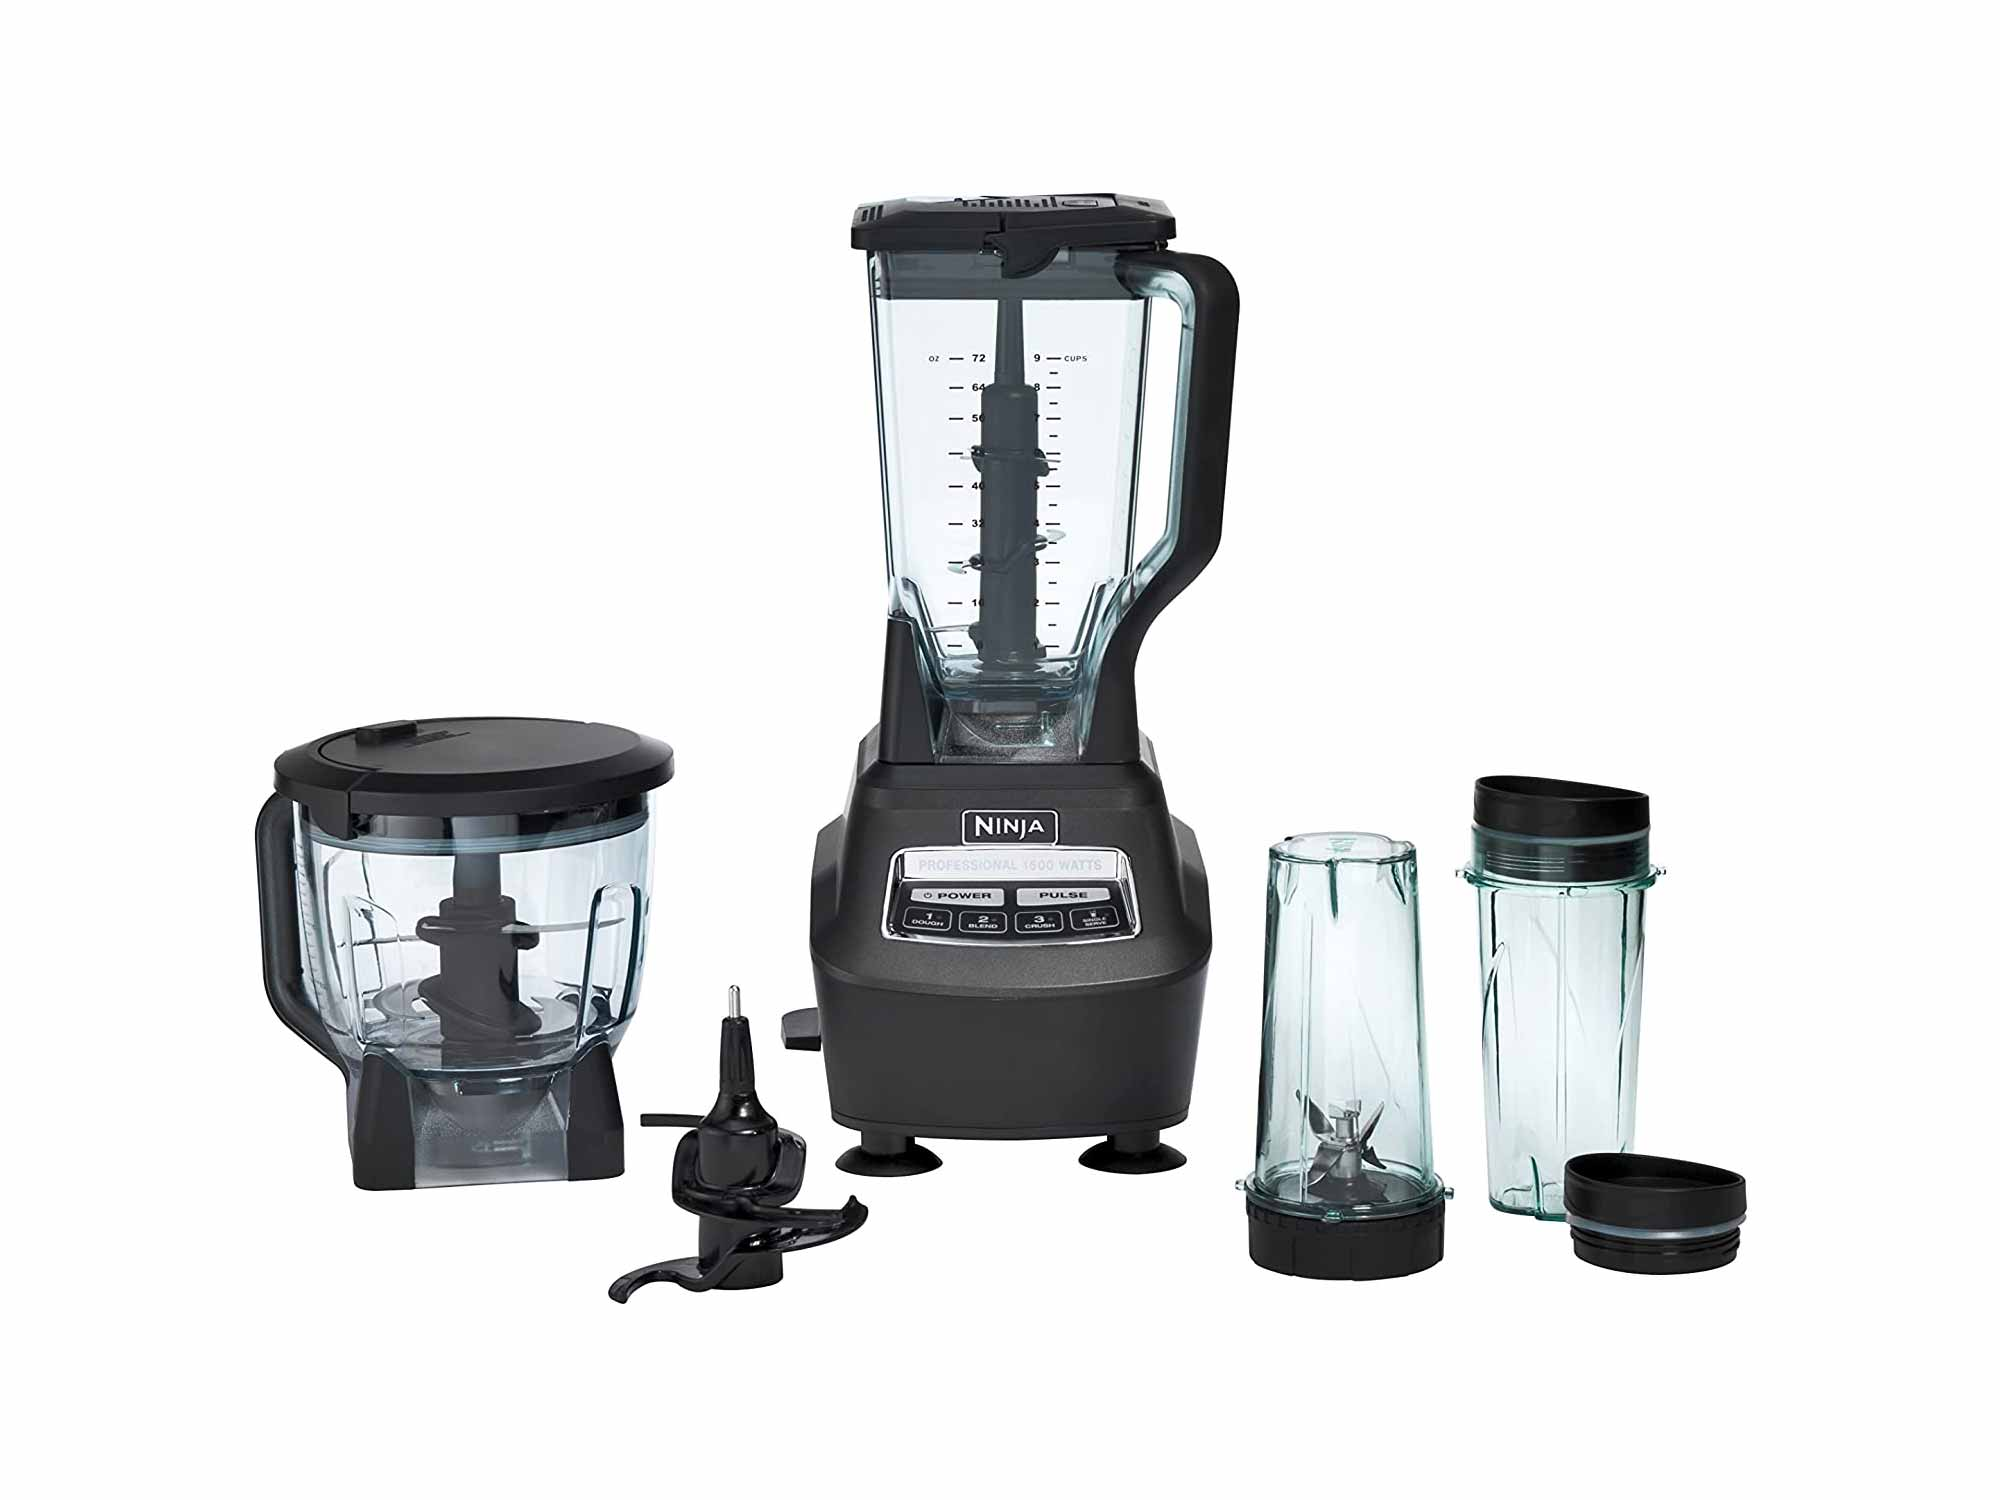 Ninja Mega Kitchen System and Blender with Total Crushing Pitcher, Food Processor Bowl, Dough Blade, To Go Cups, 1500-Watt Base, Black